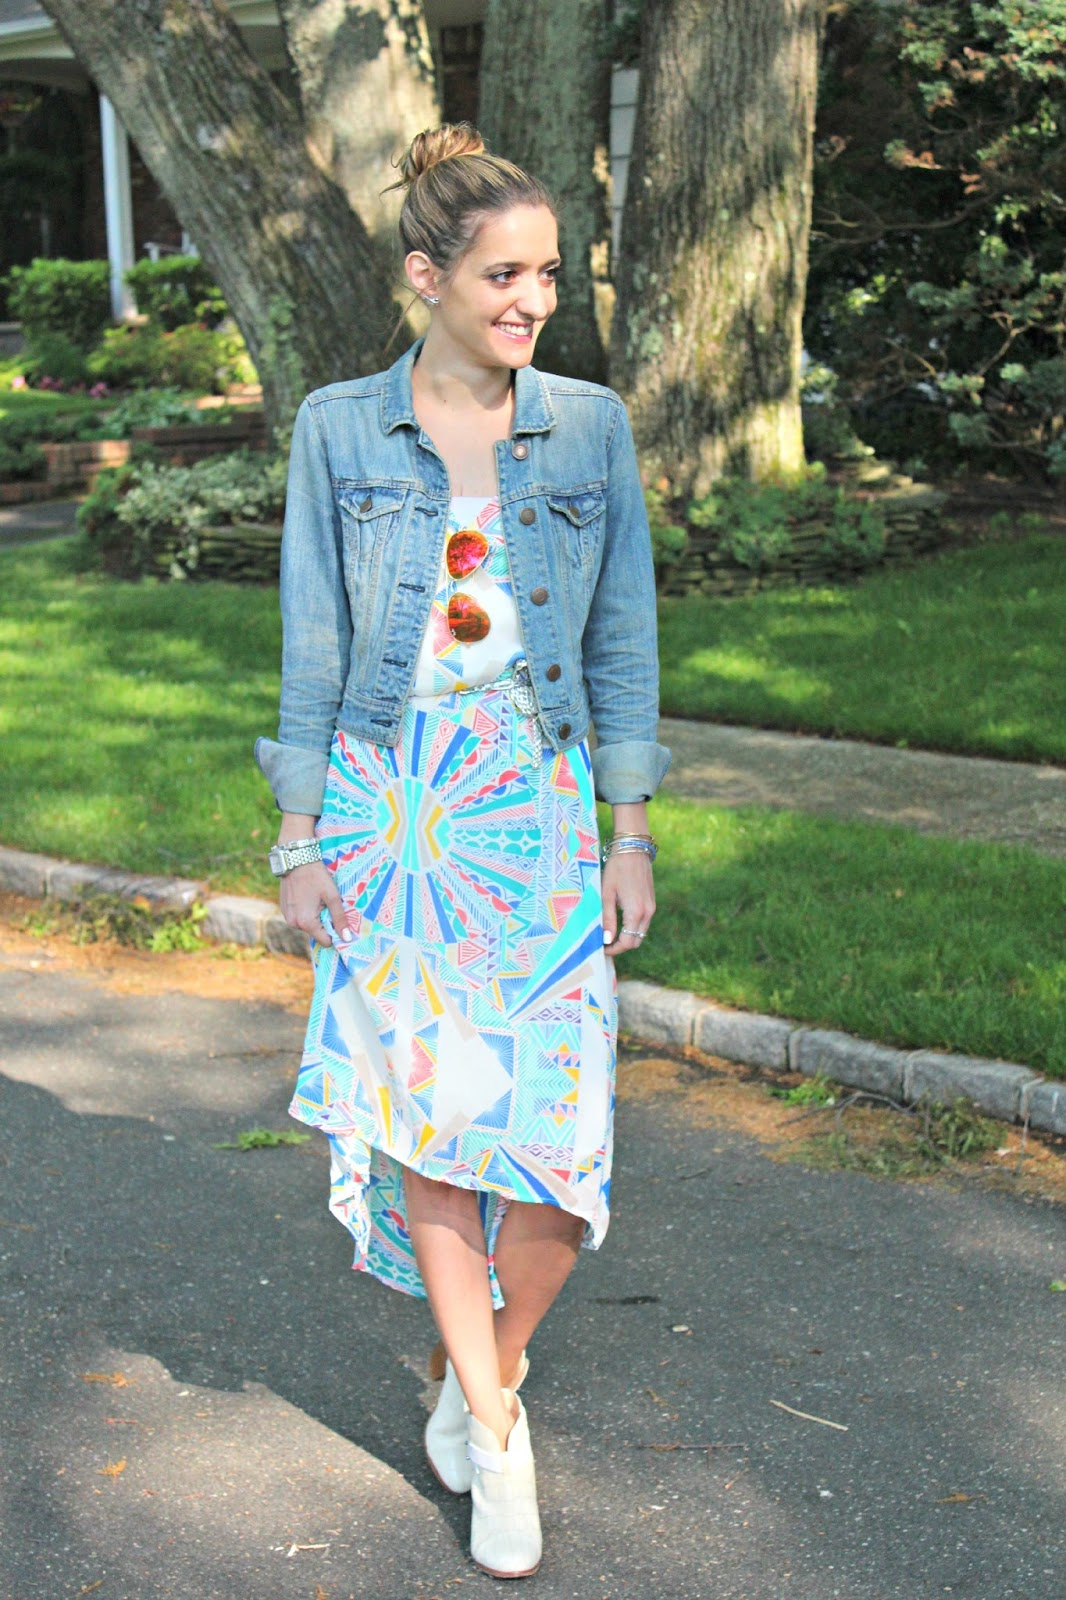 dressometry blogger collaboration